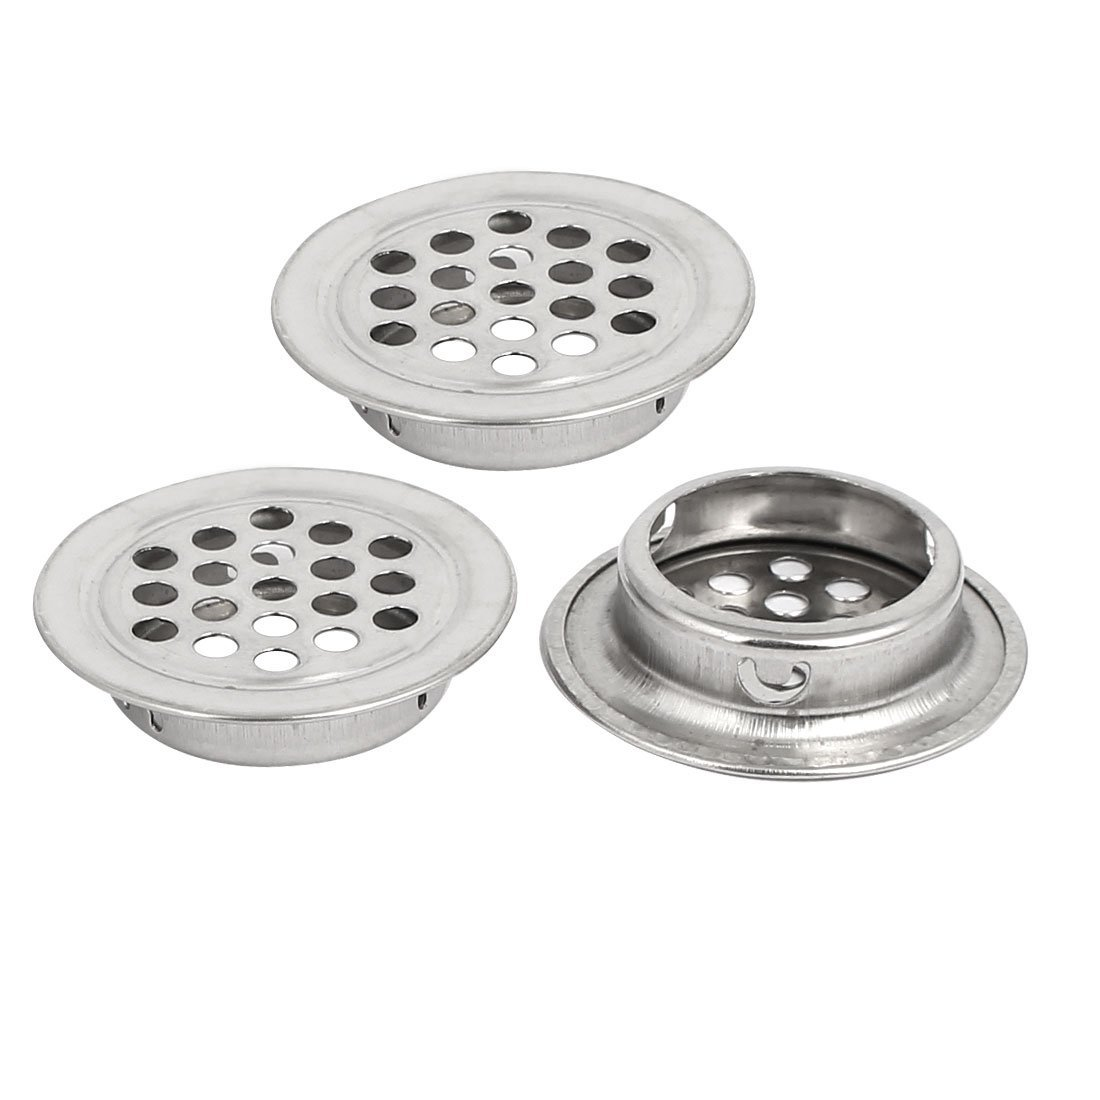 uxcell Household 25mm Bottom Dia Metal Round Mesh Hole Air Vent Louver Silver Tone 3pcs